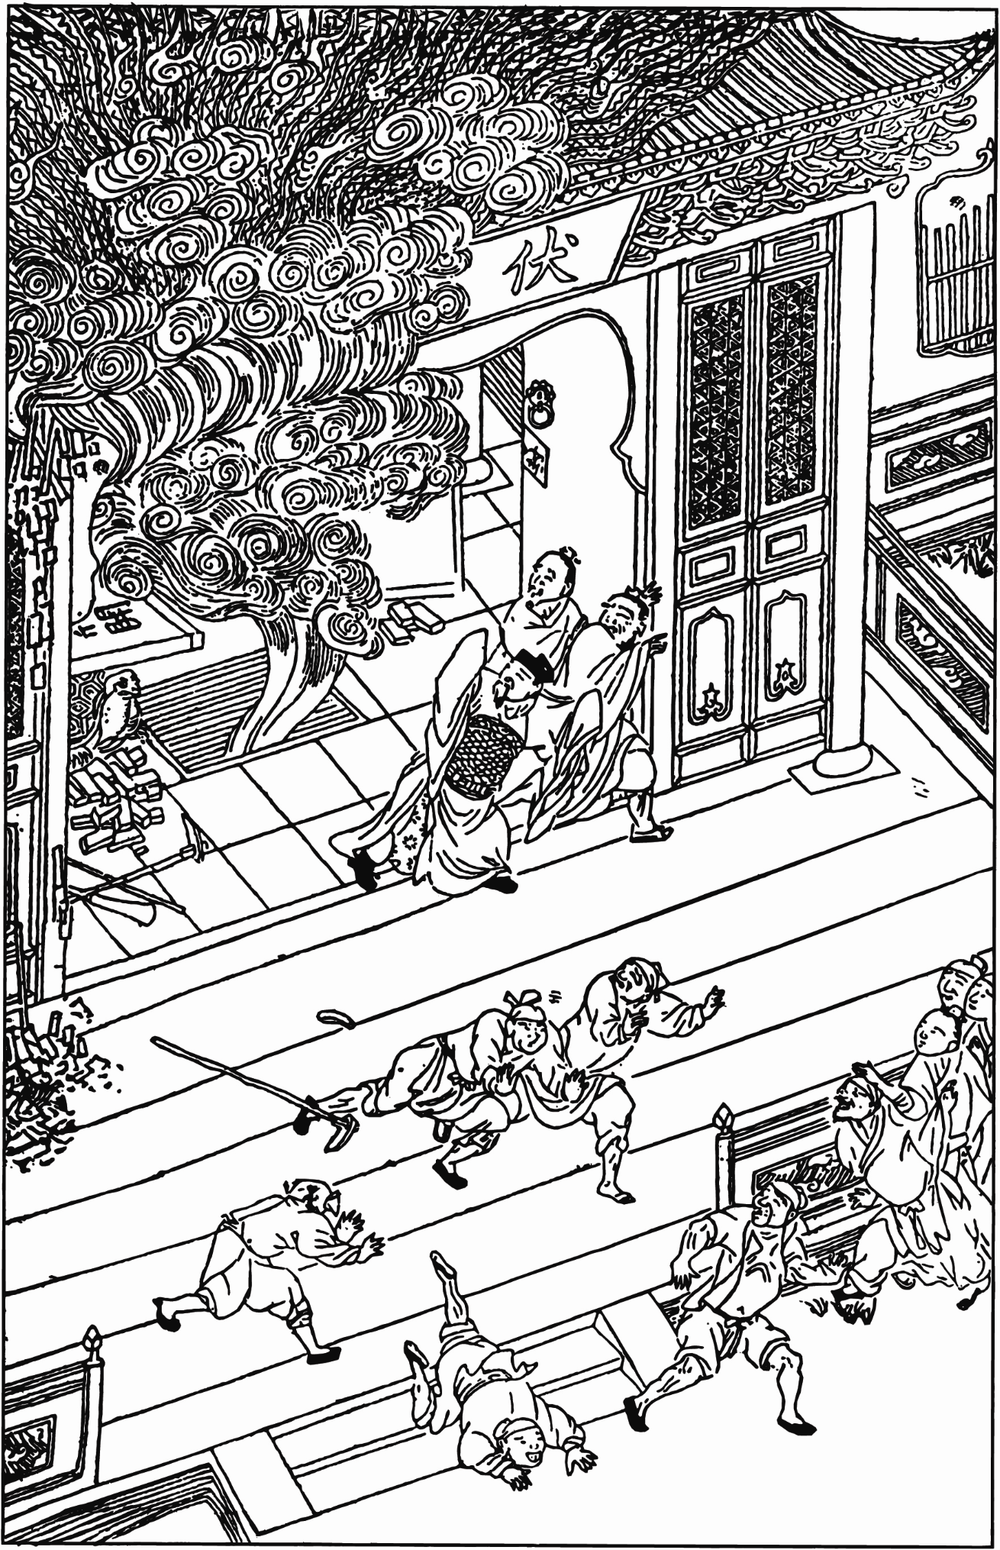 The opening scene of Outlaws of the Marsh (Shuihu Zhuan); 108 Demons being released from a well. Through the practice of Kung Fu they become righteous heroes and eventually they found a new country.